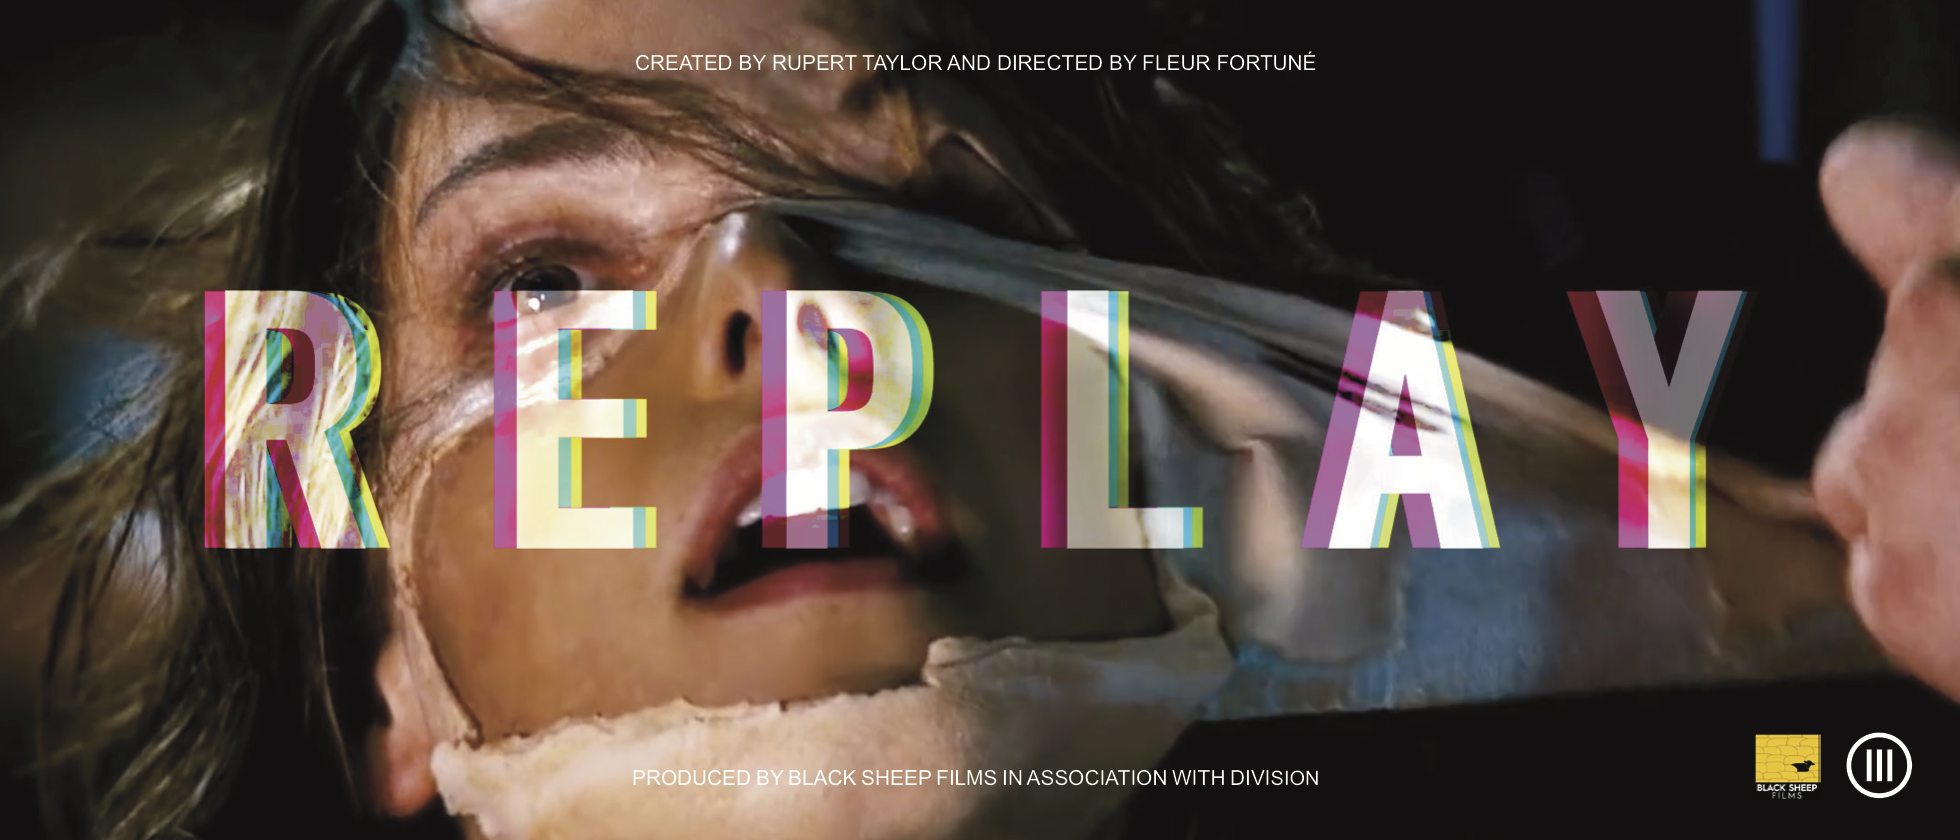 Replay (Black Sheep Films and Division Paris) among the selected projects of MIA|TV Drama Series Pitching Forum